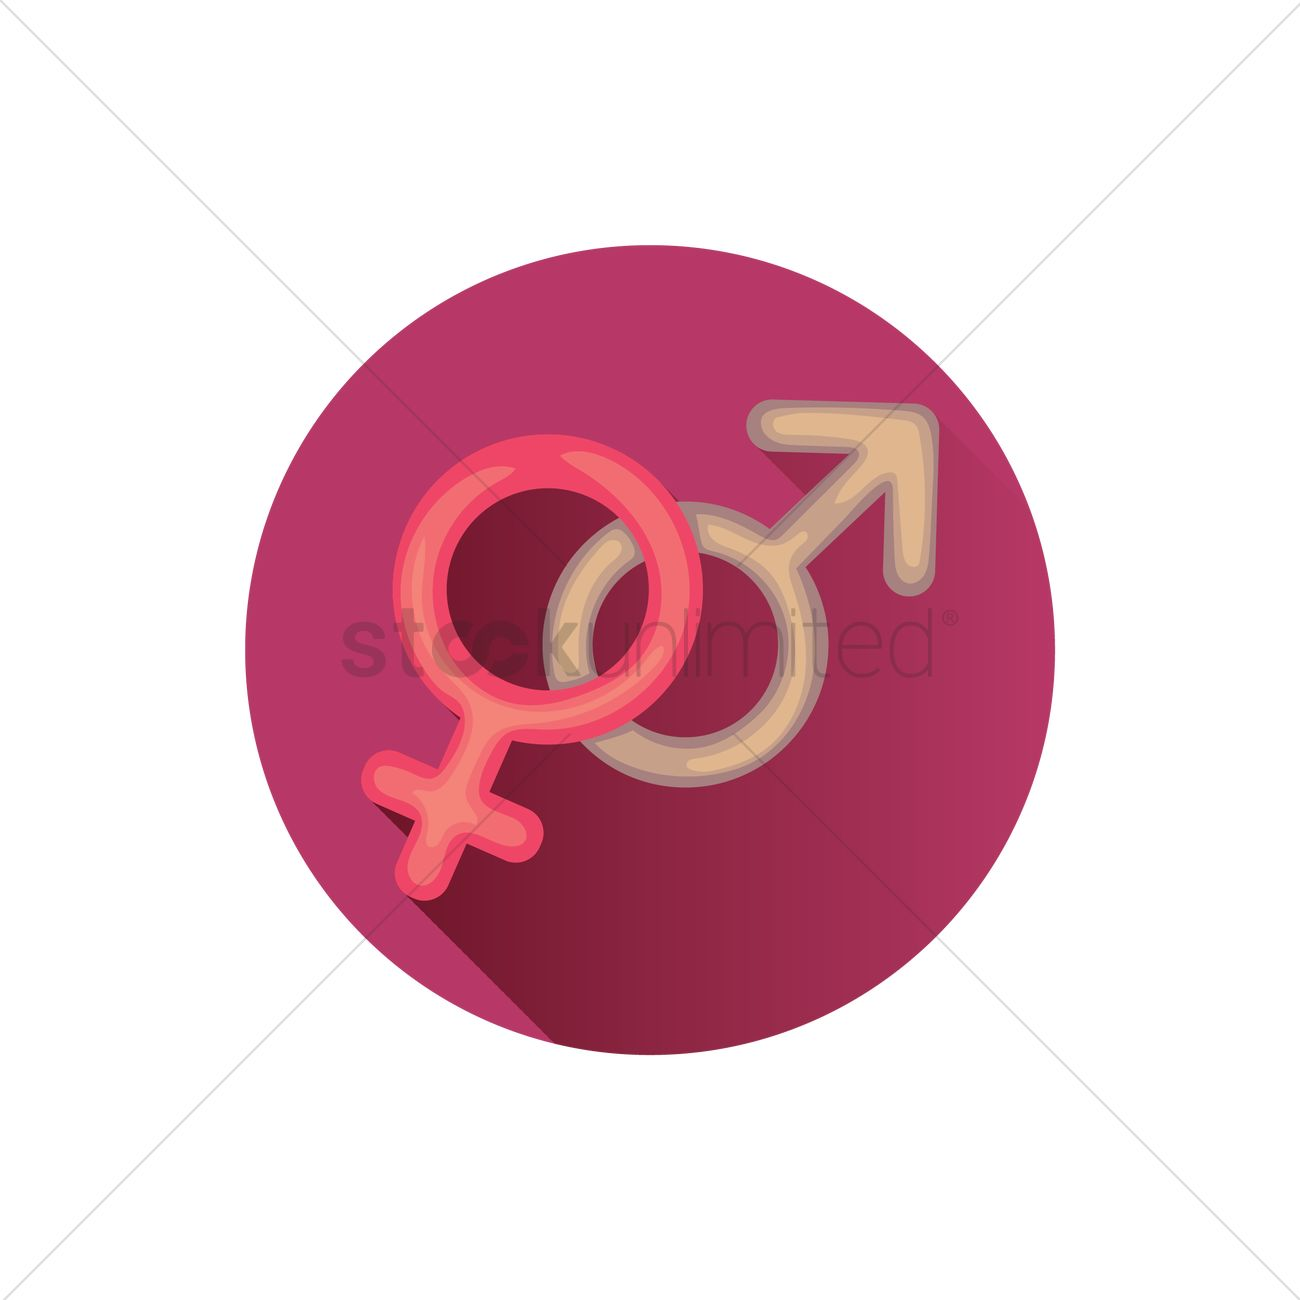 Female And Male Symbols Vector Image 1240674 Stockunlimited